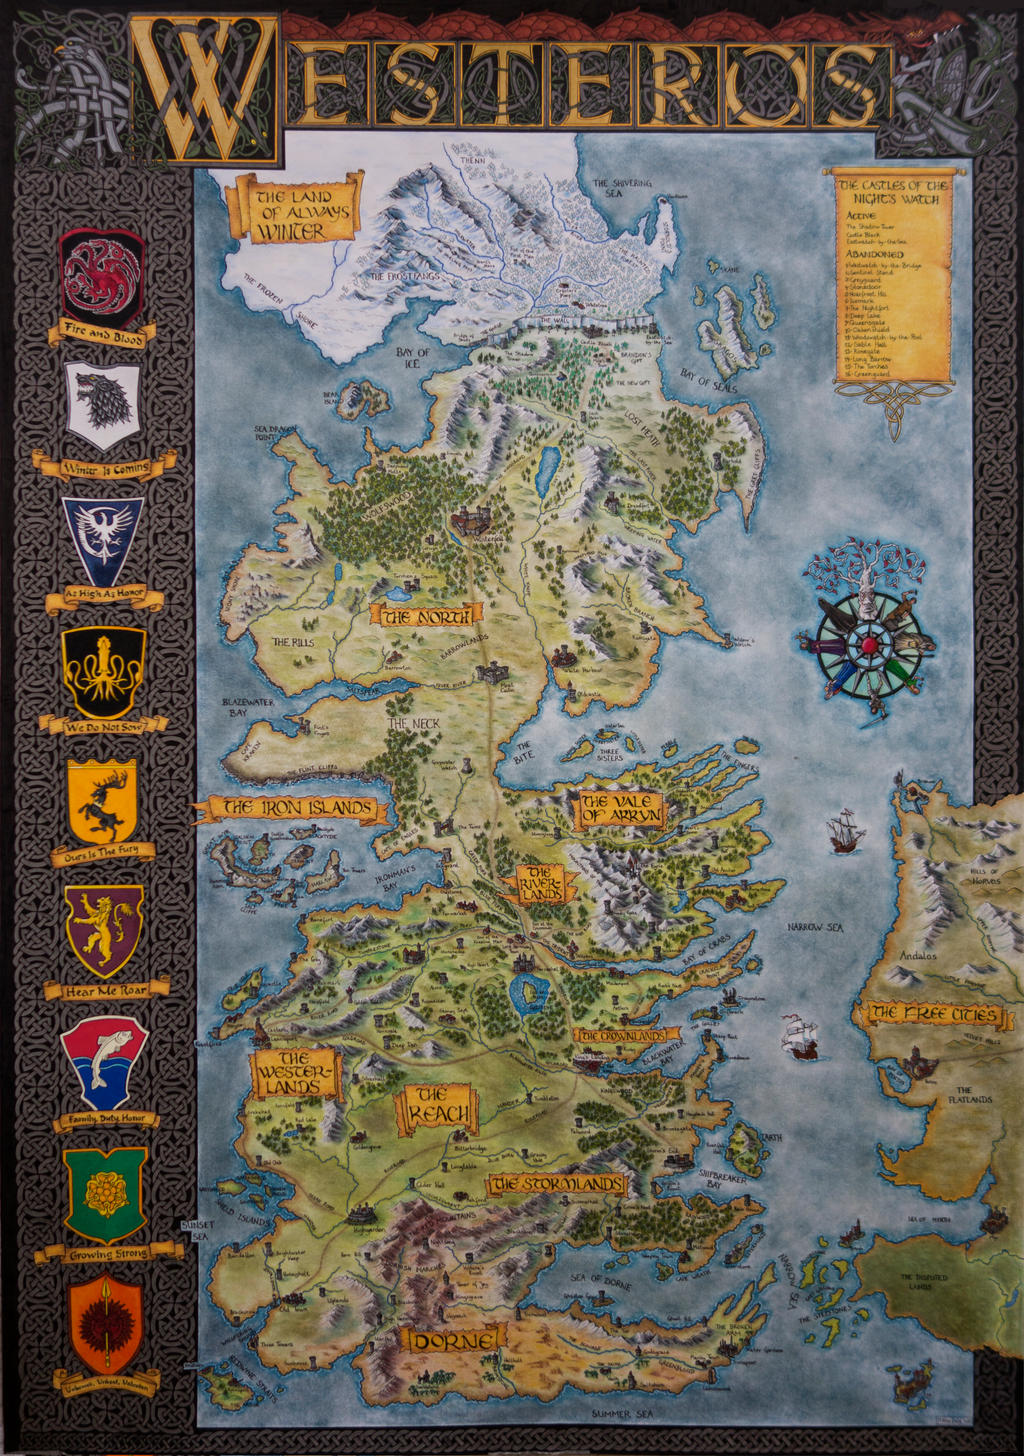 Hand drawn westeros map complete and finished map by klaradox on hand drawn westeros map complete and finished map by klaradox gumiabroncs Images